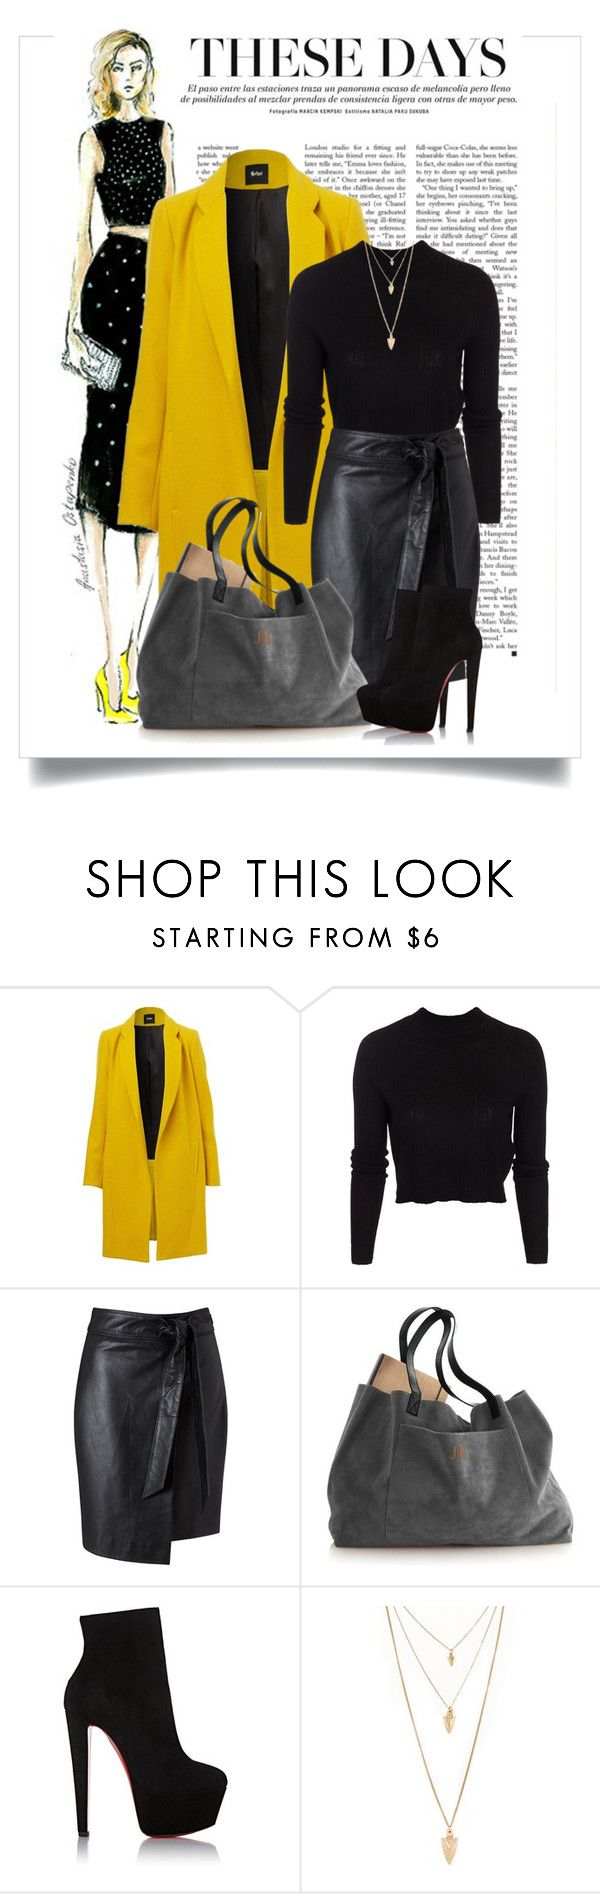 """""""желтое пальто"""" by www-gufi ❤ liked on Polyvore featuring moda, ONLY, Miss Selfridge, Christian Louboutin i Forever 21"""